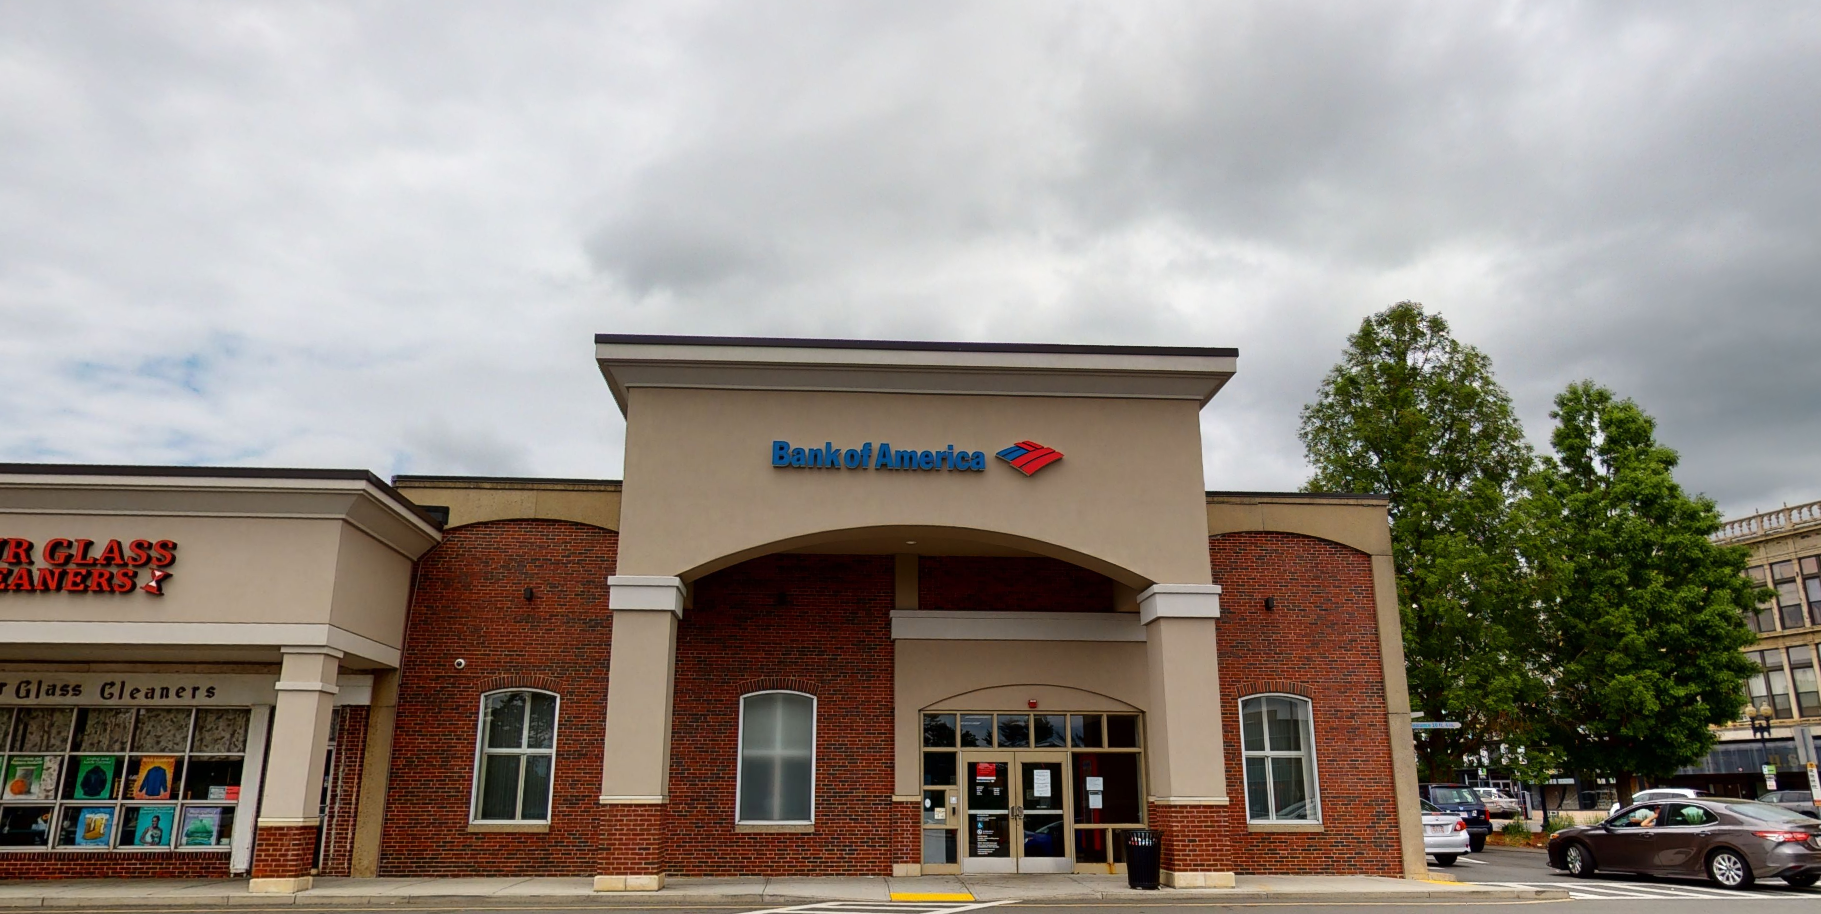 Bank of America financial center with drive-thru ATM   1 State St, Lynn, MA 01901